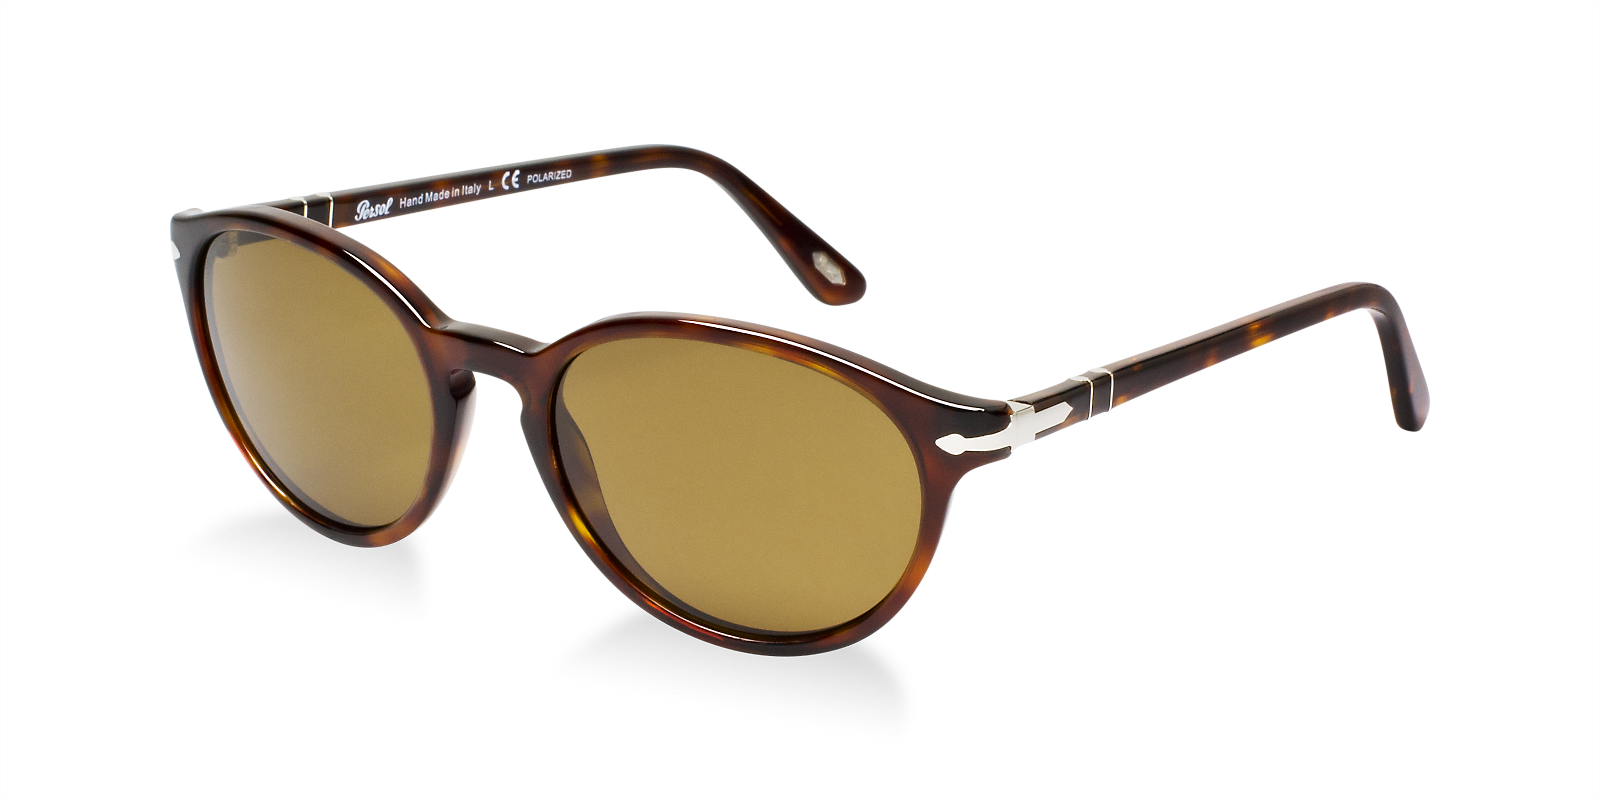 PERSOL PO3015S 51 | Gadgets | Pinterest | Persol, Classy and Fashion